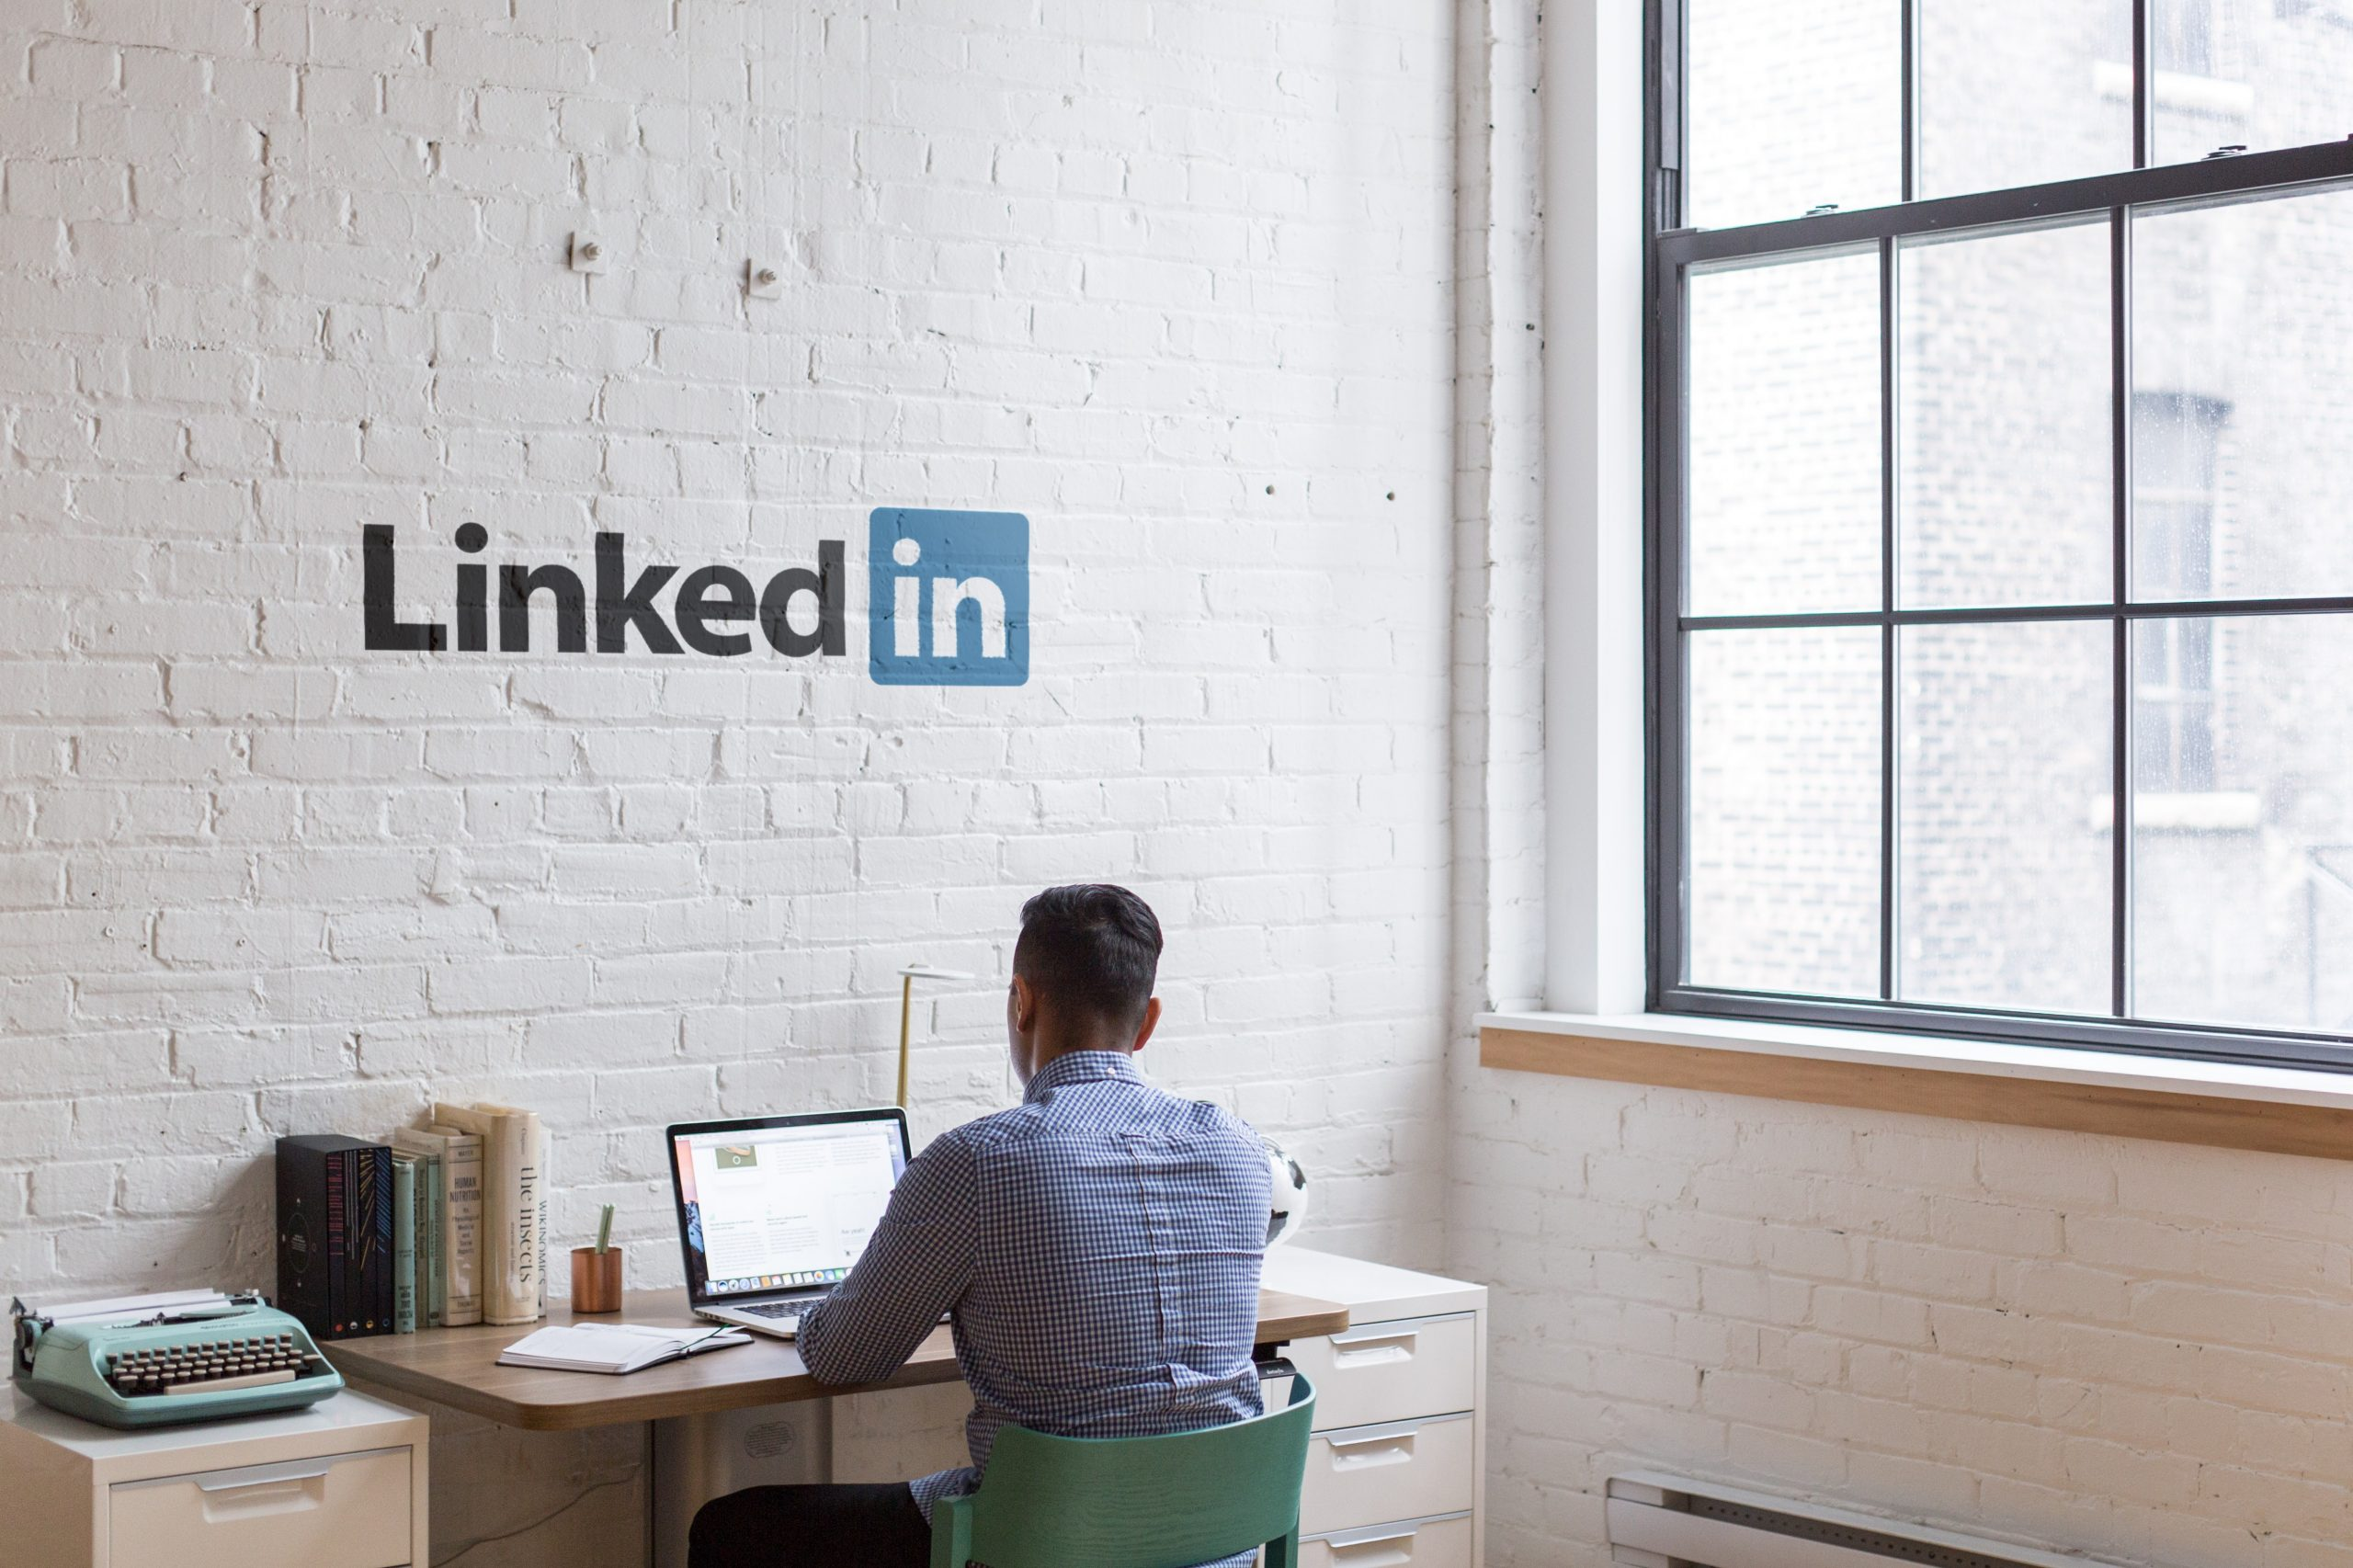 LinkedIn for Real Estate: 3 Tips for Generating Leads